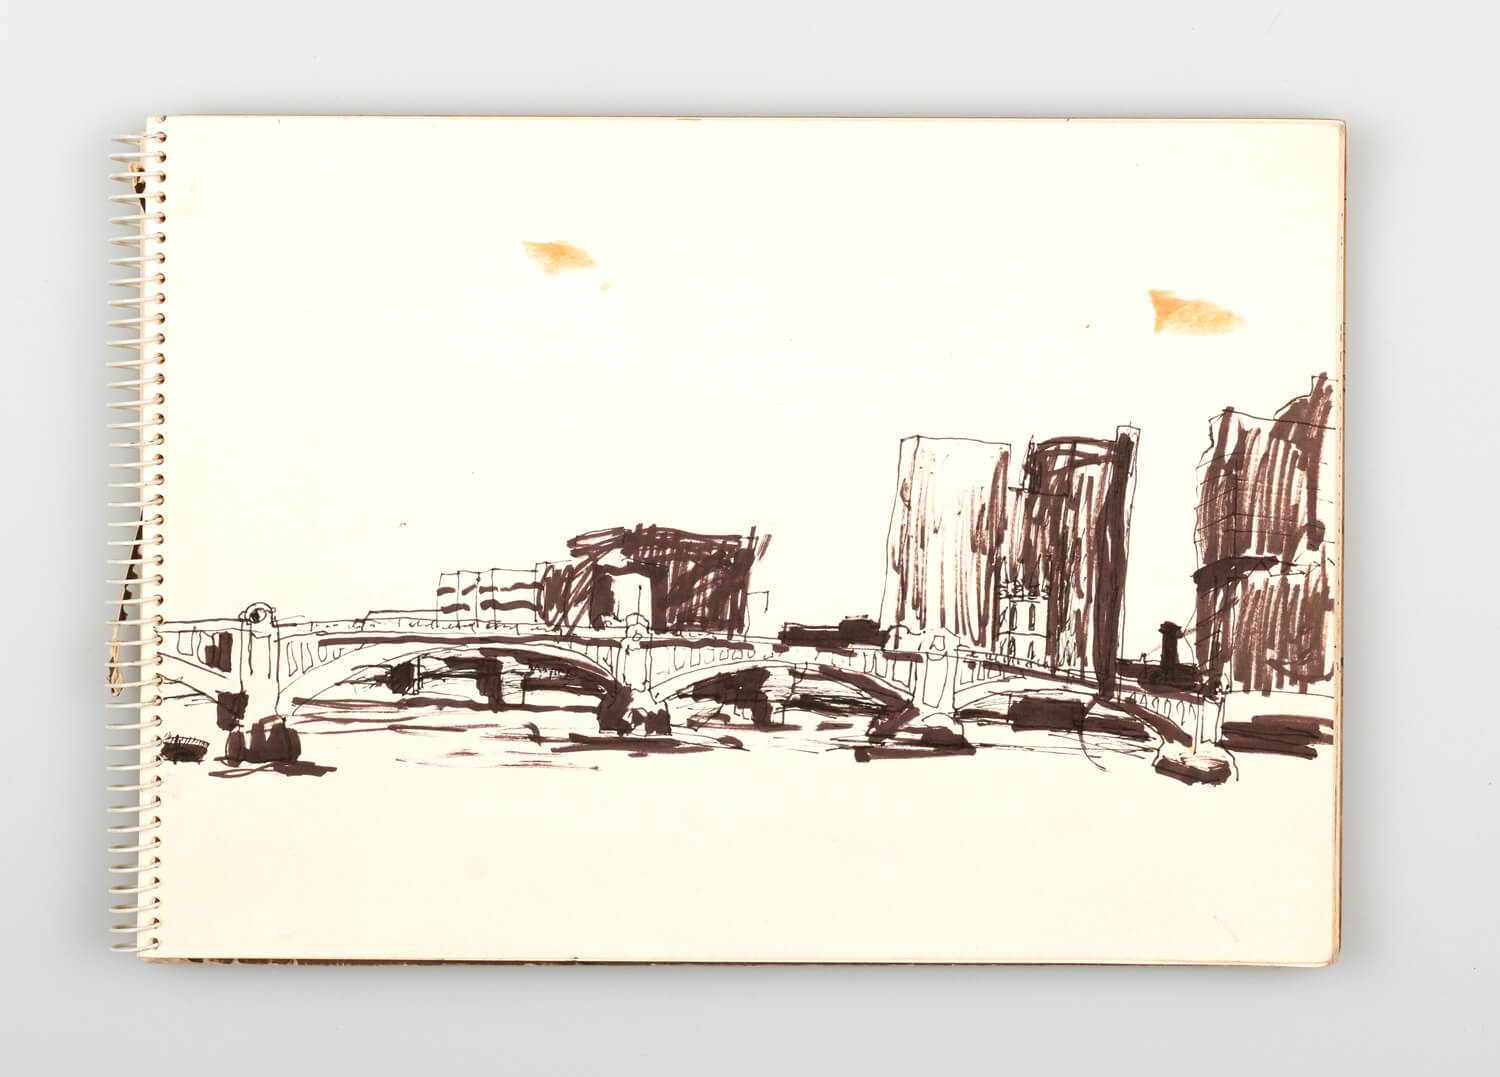 JB217 - Sketch for Bridges on the River Thames - 1992 - 21 x 30 cm - Pen and Ink on cartridge paper